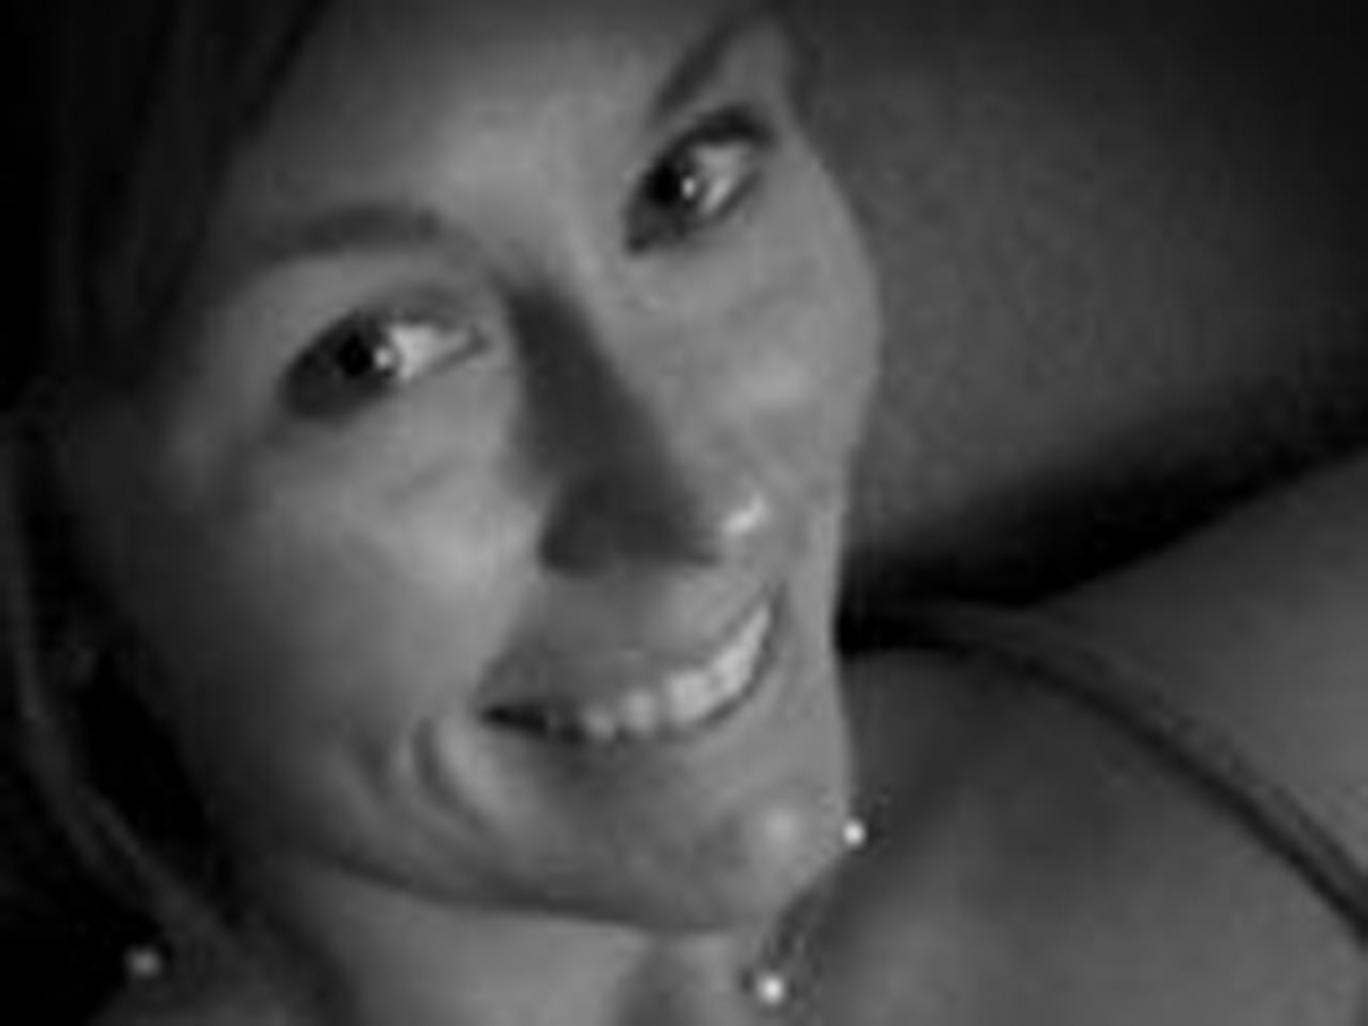 Courtney Sanford, 32, posted selfies and status updates to Facebook moments before a fatal collision on a US highway